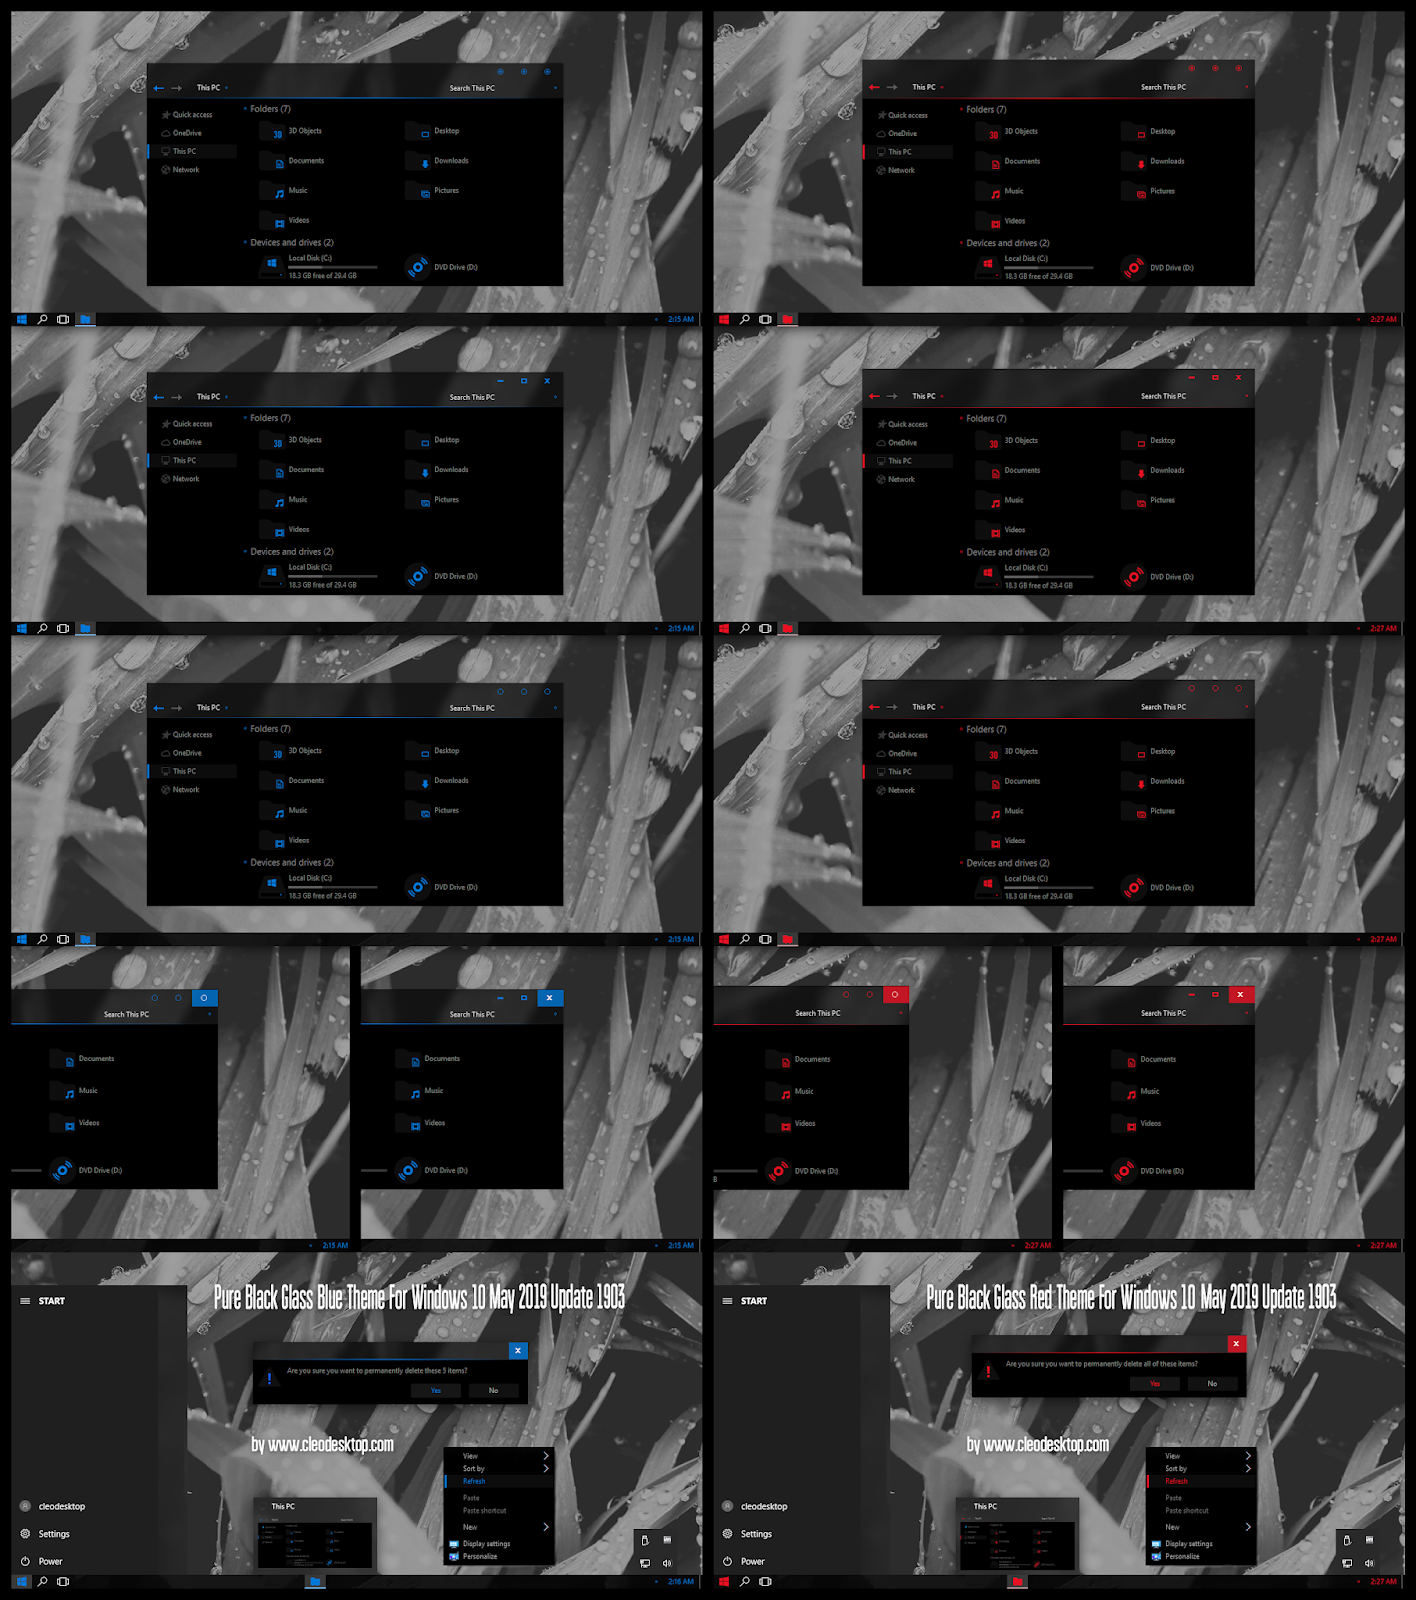 Pure Black Glass Blue and Red Theme Windows10 May 2019 Update 1903